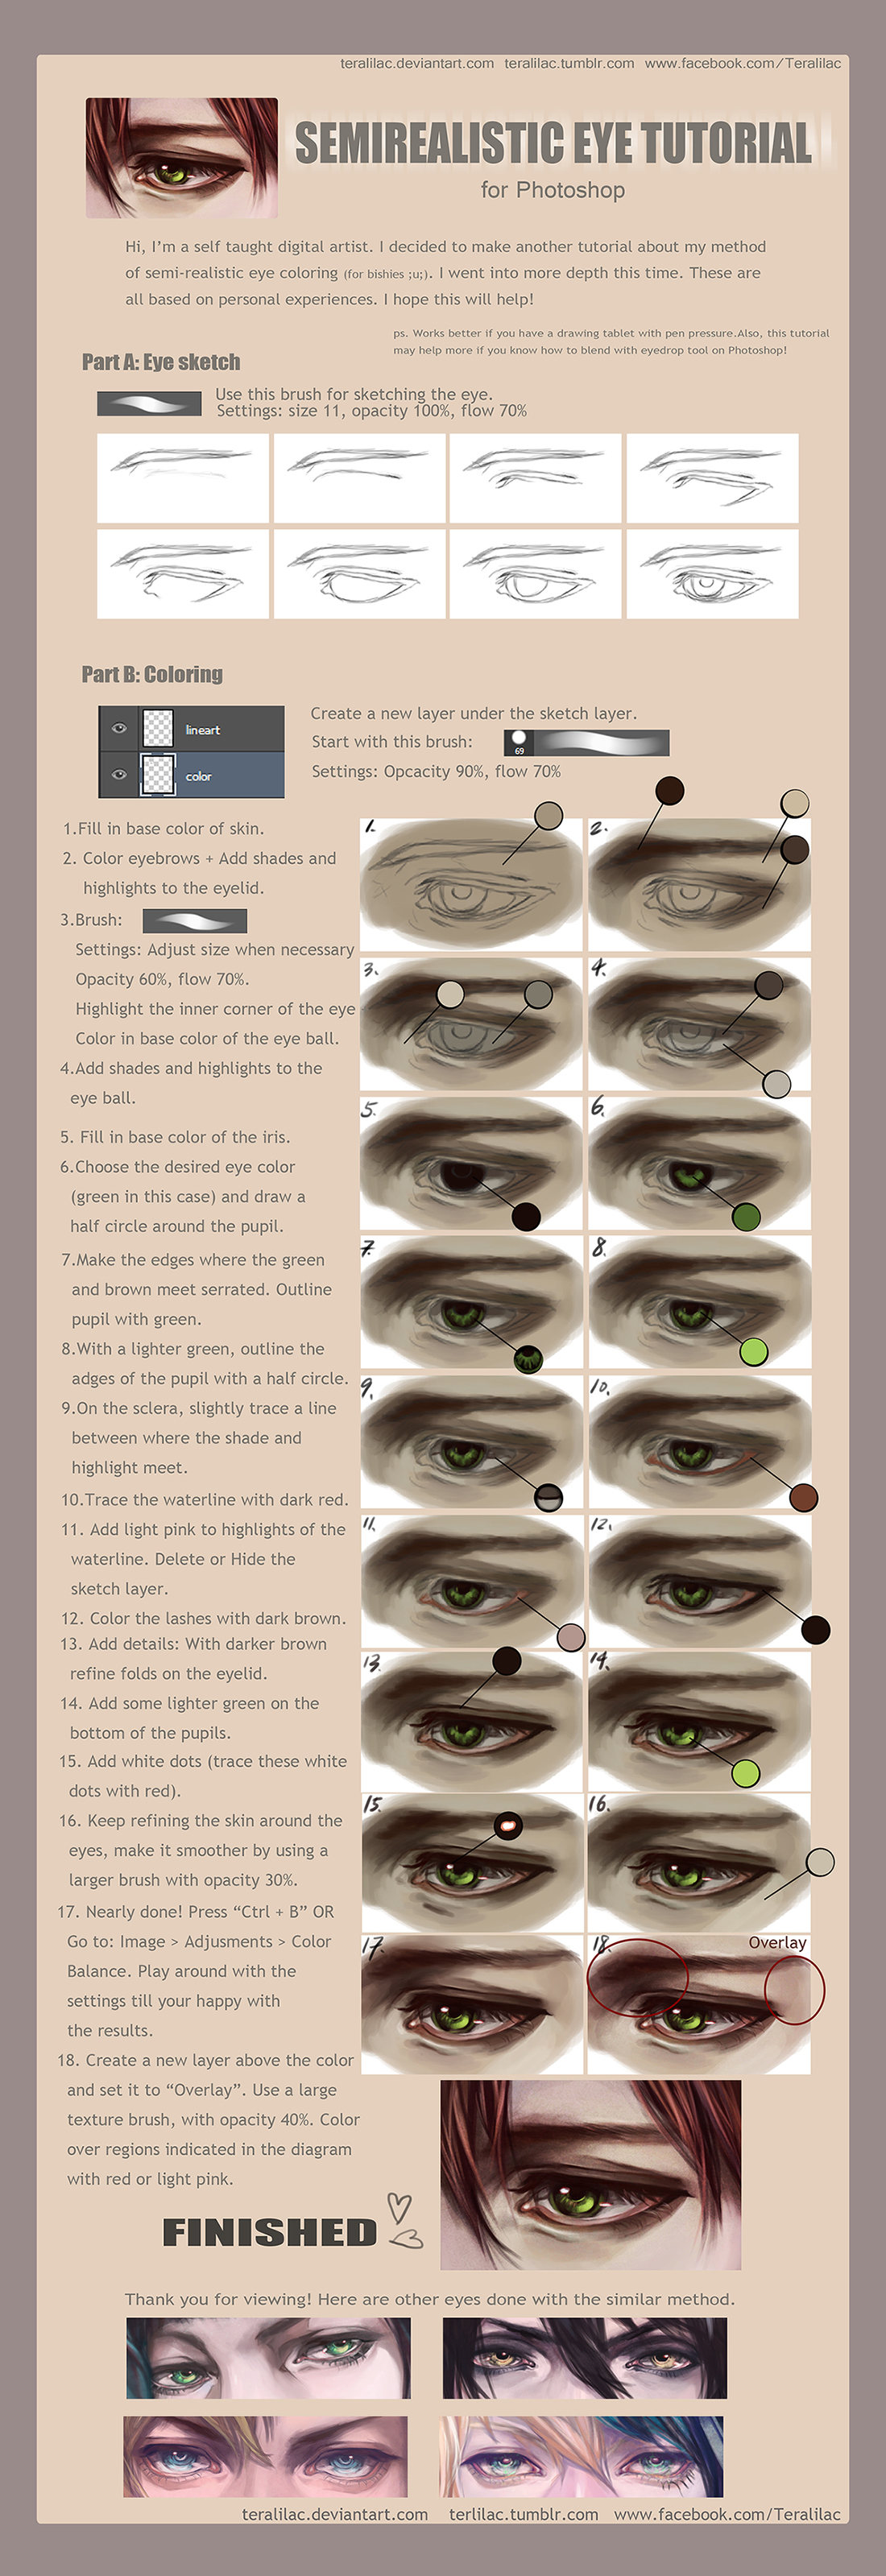 [Tutorial] Semirealistic Eye by teralilac